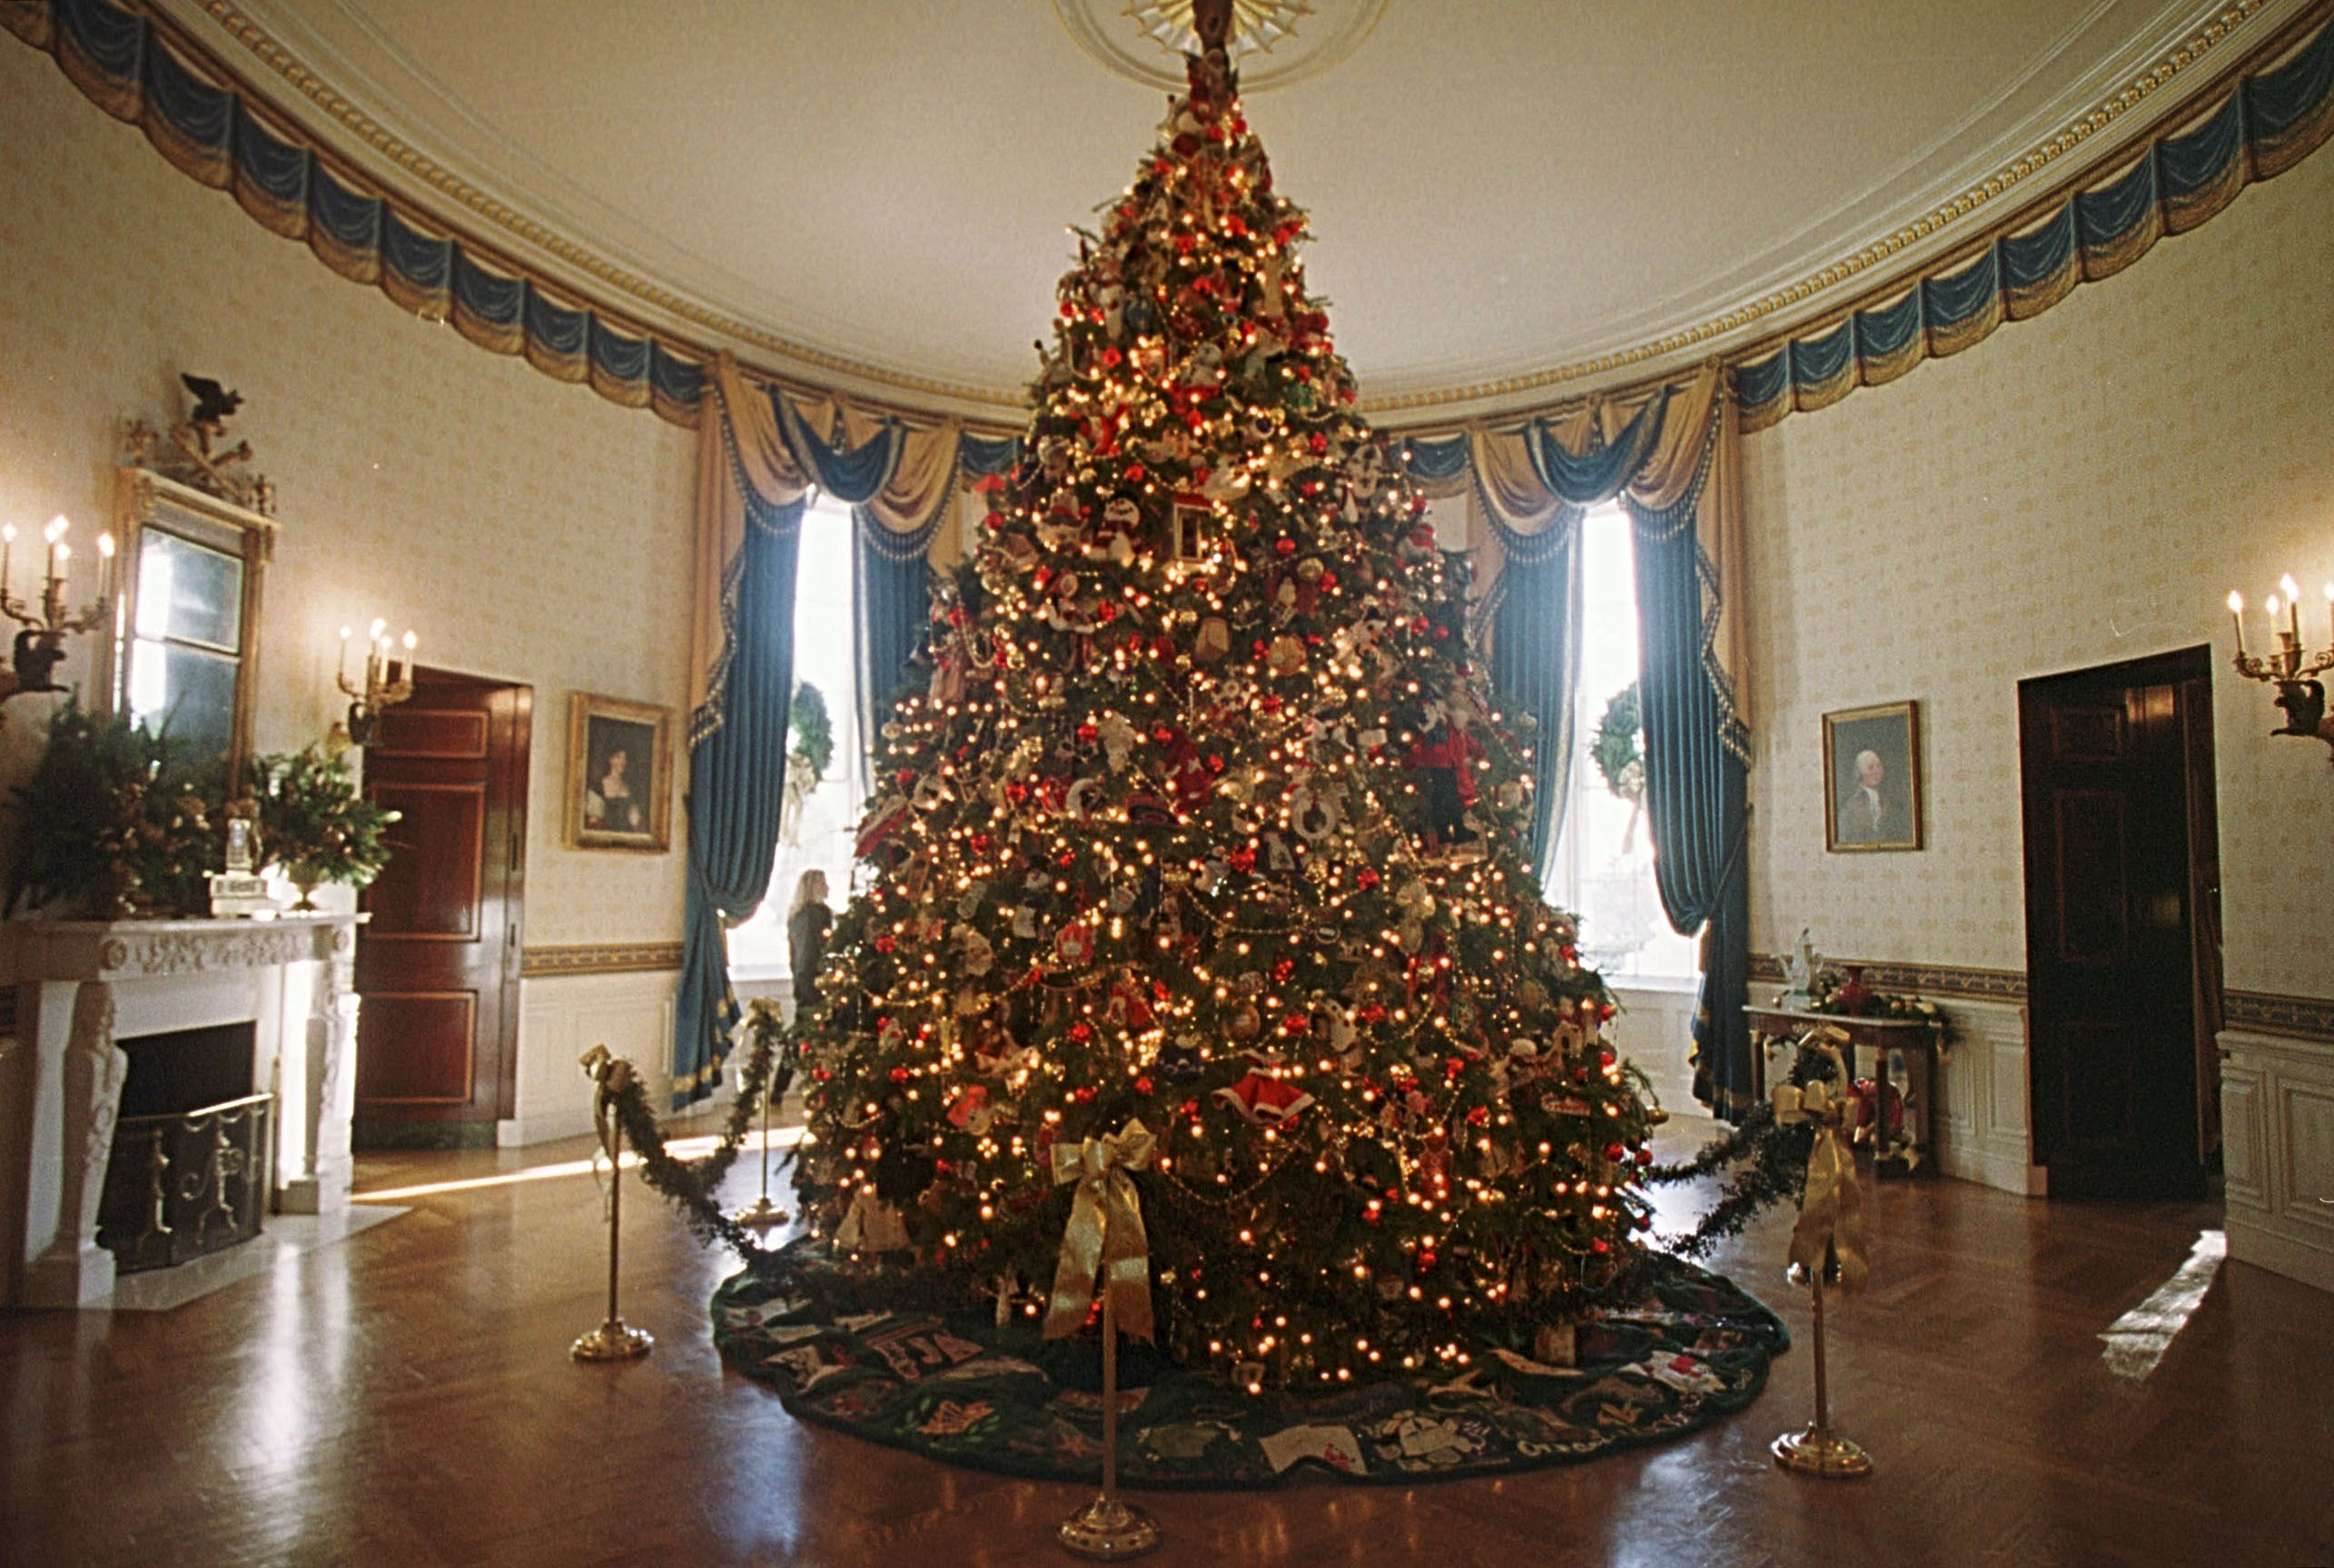 The White House Christmas tree in the Blue Room of the White House December 4, 2000 in Washington DC. | Source: Getty Images